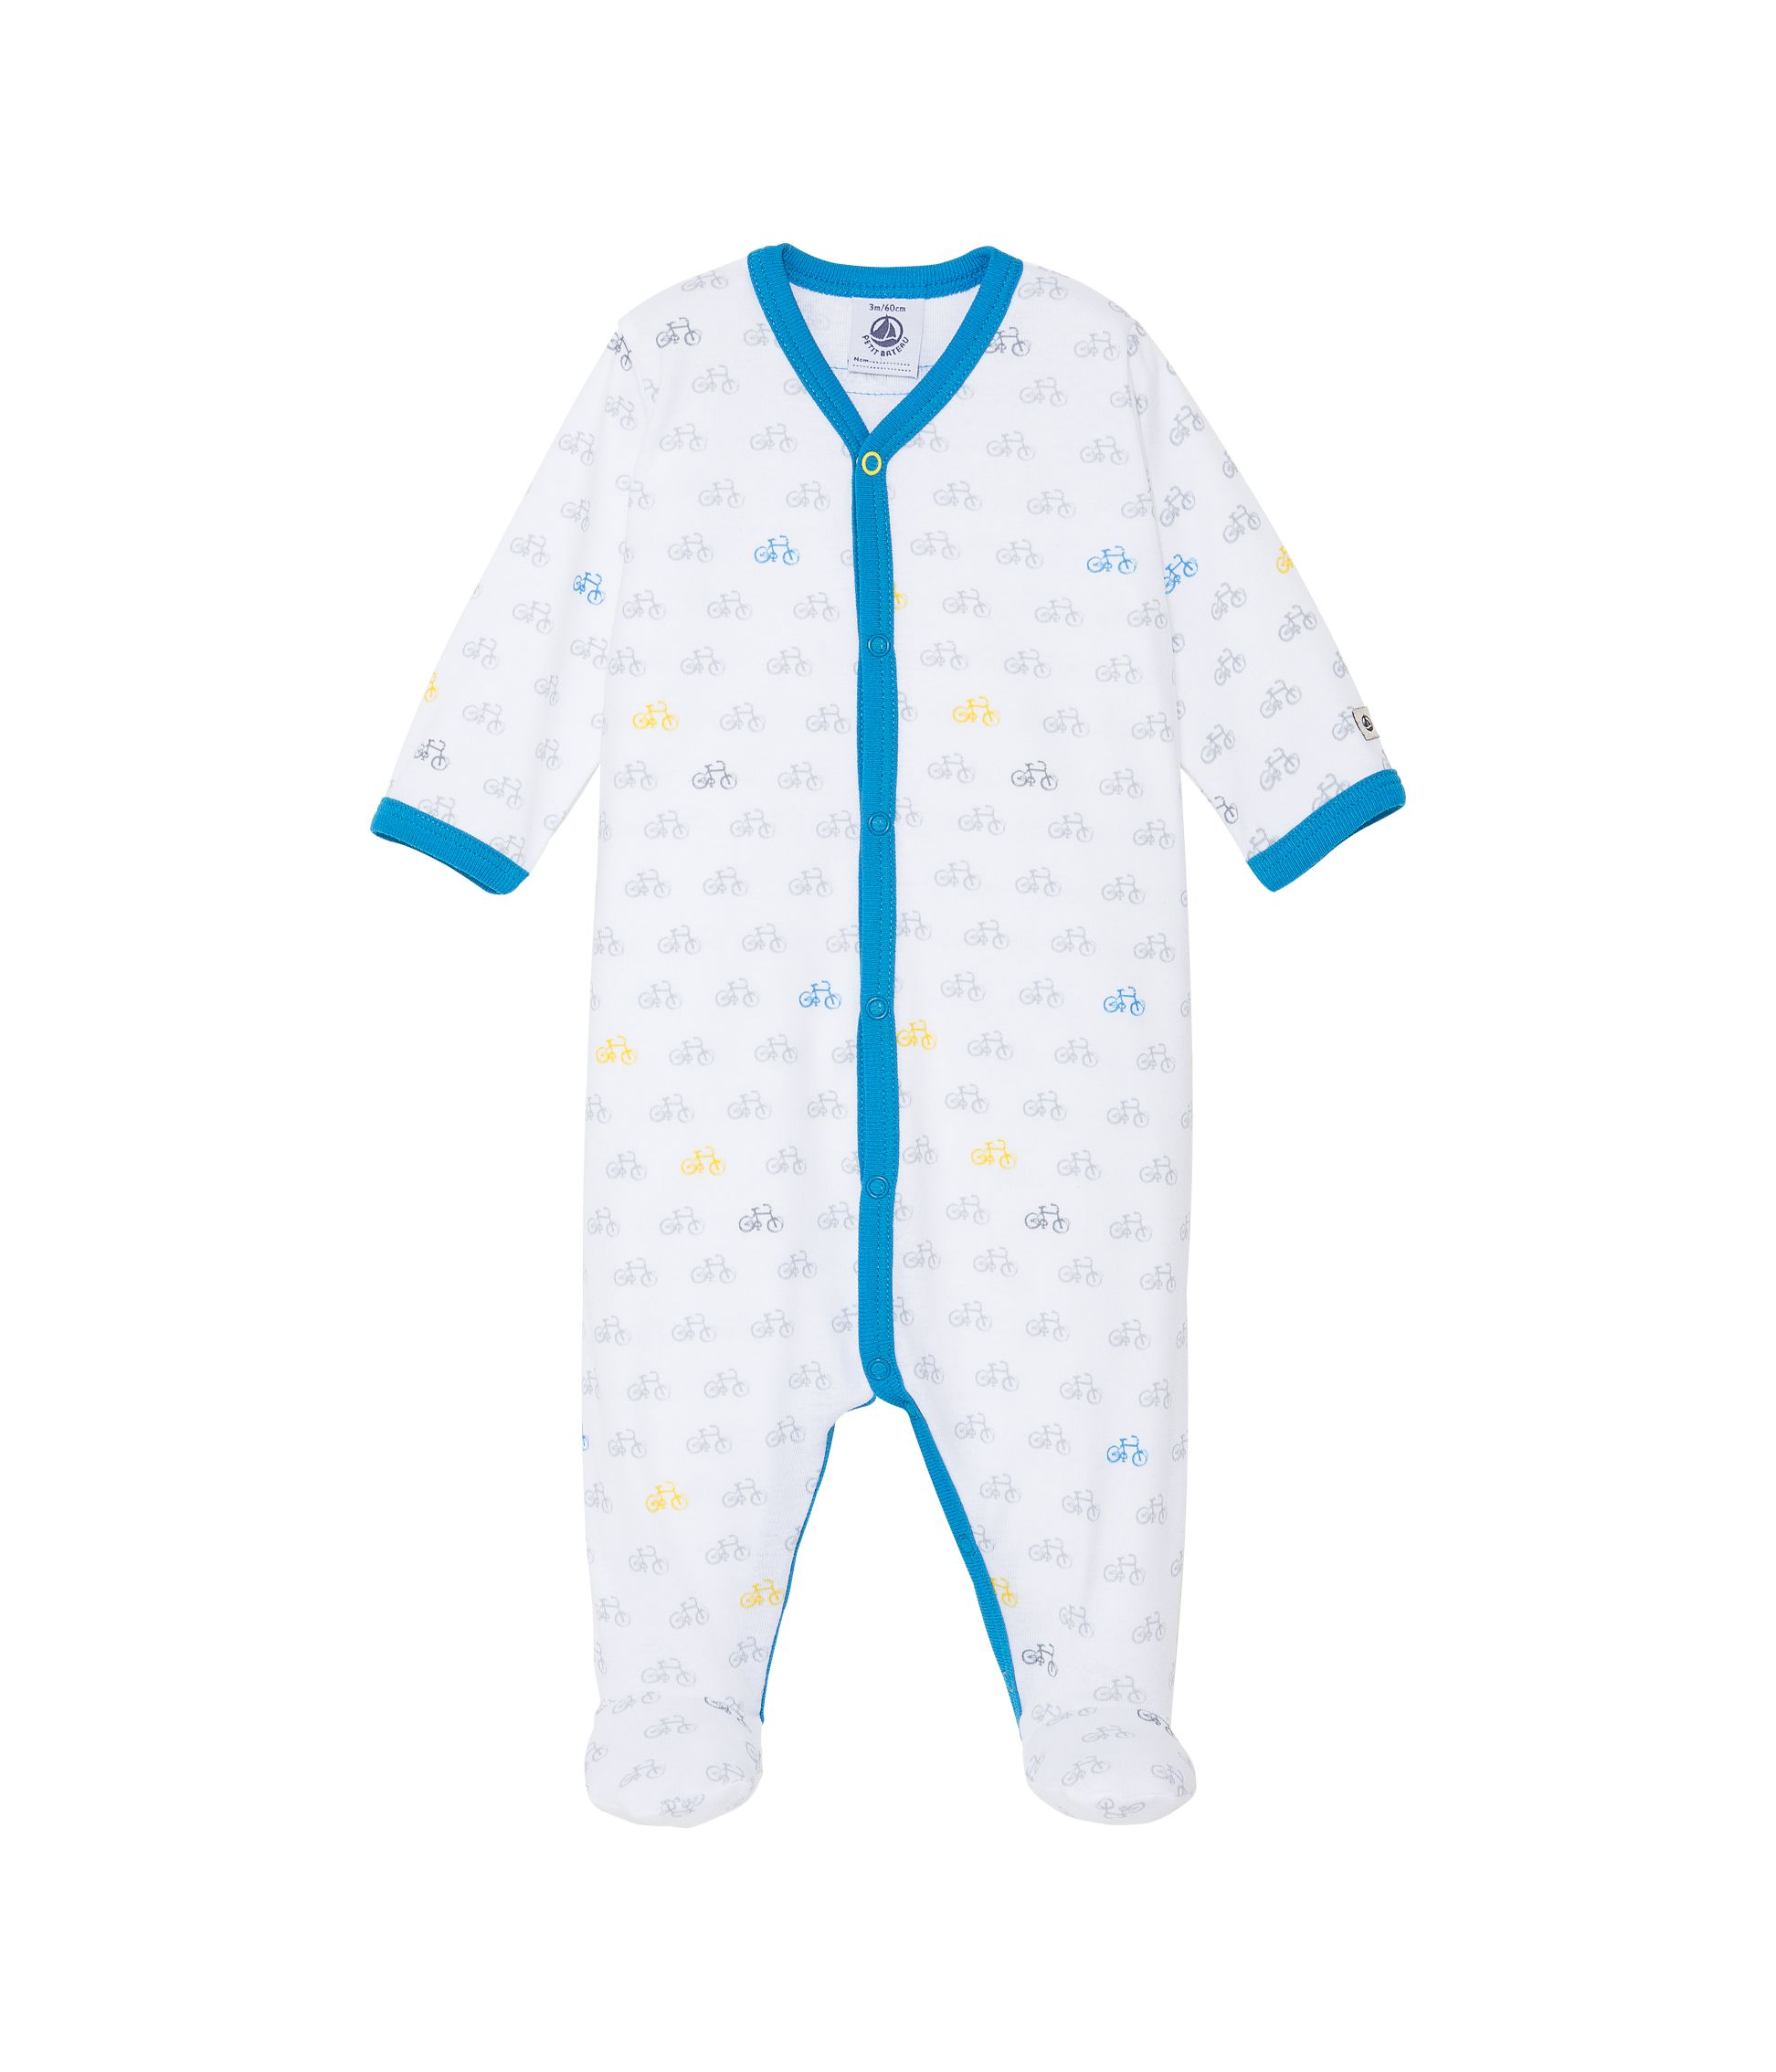 Baby boys bicycle print sleepsuit